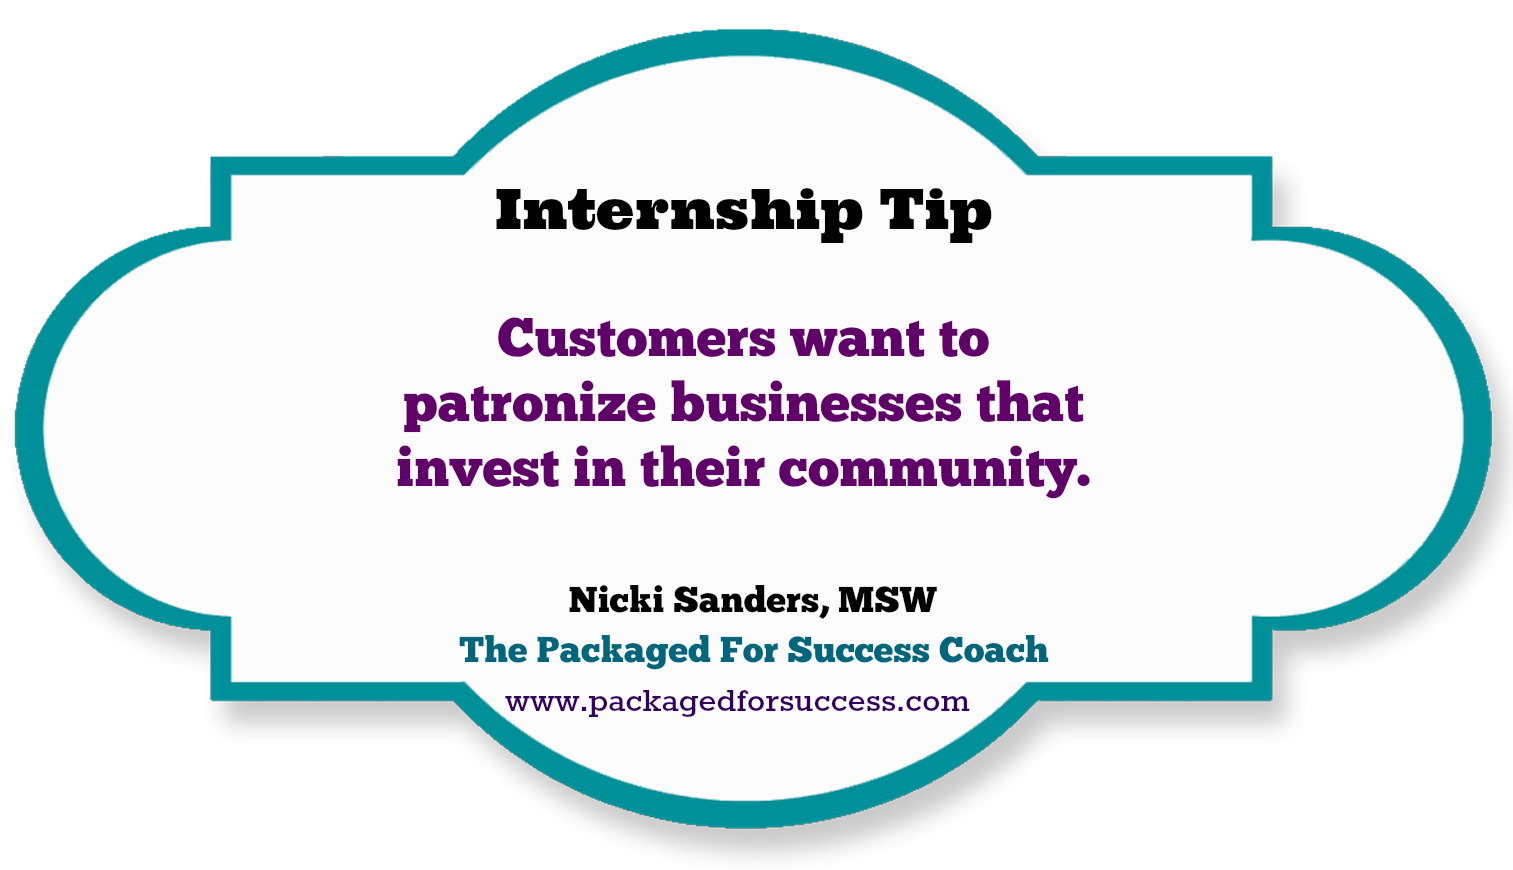 Customers want to patronize businesses that invest in their community.